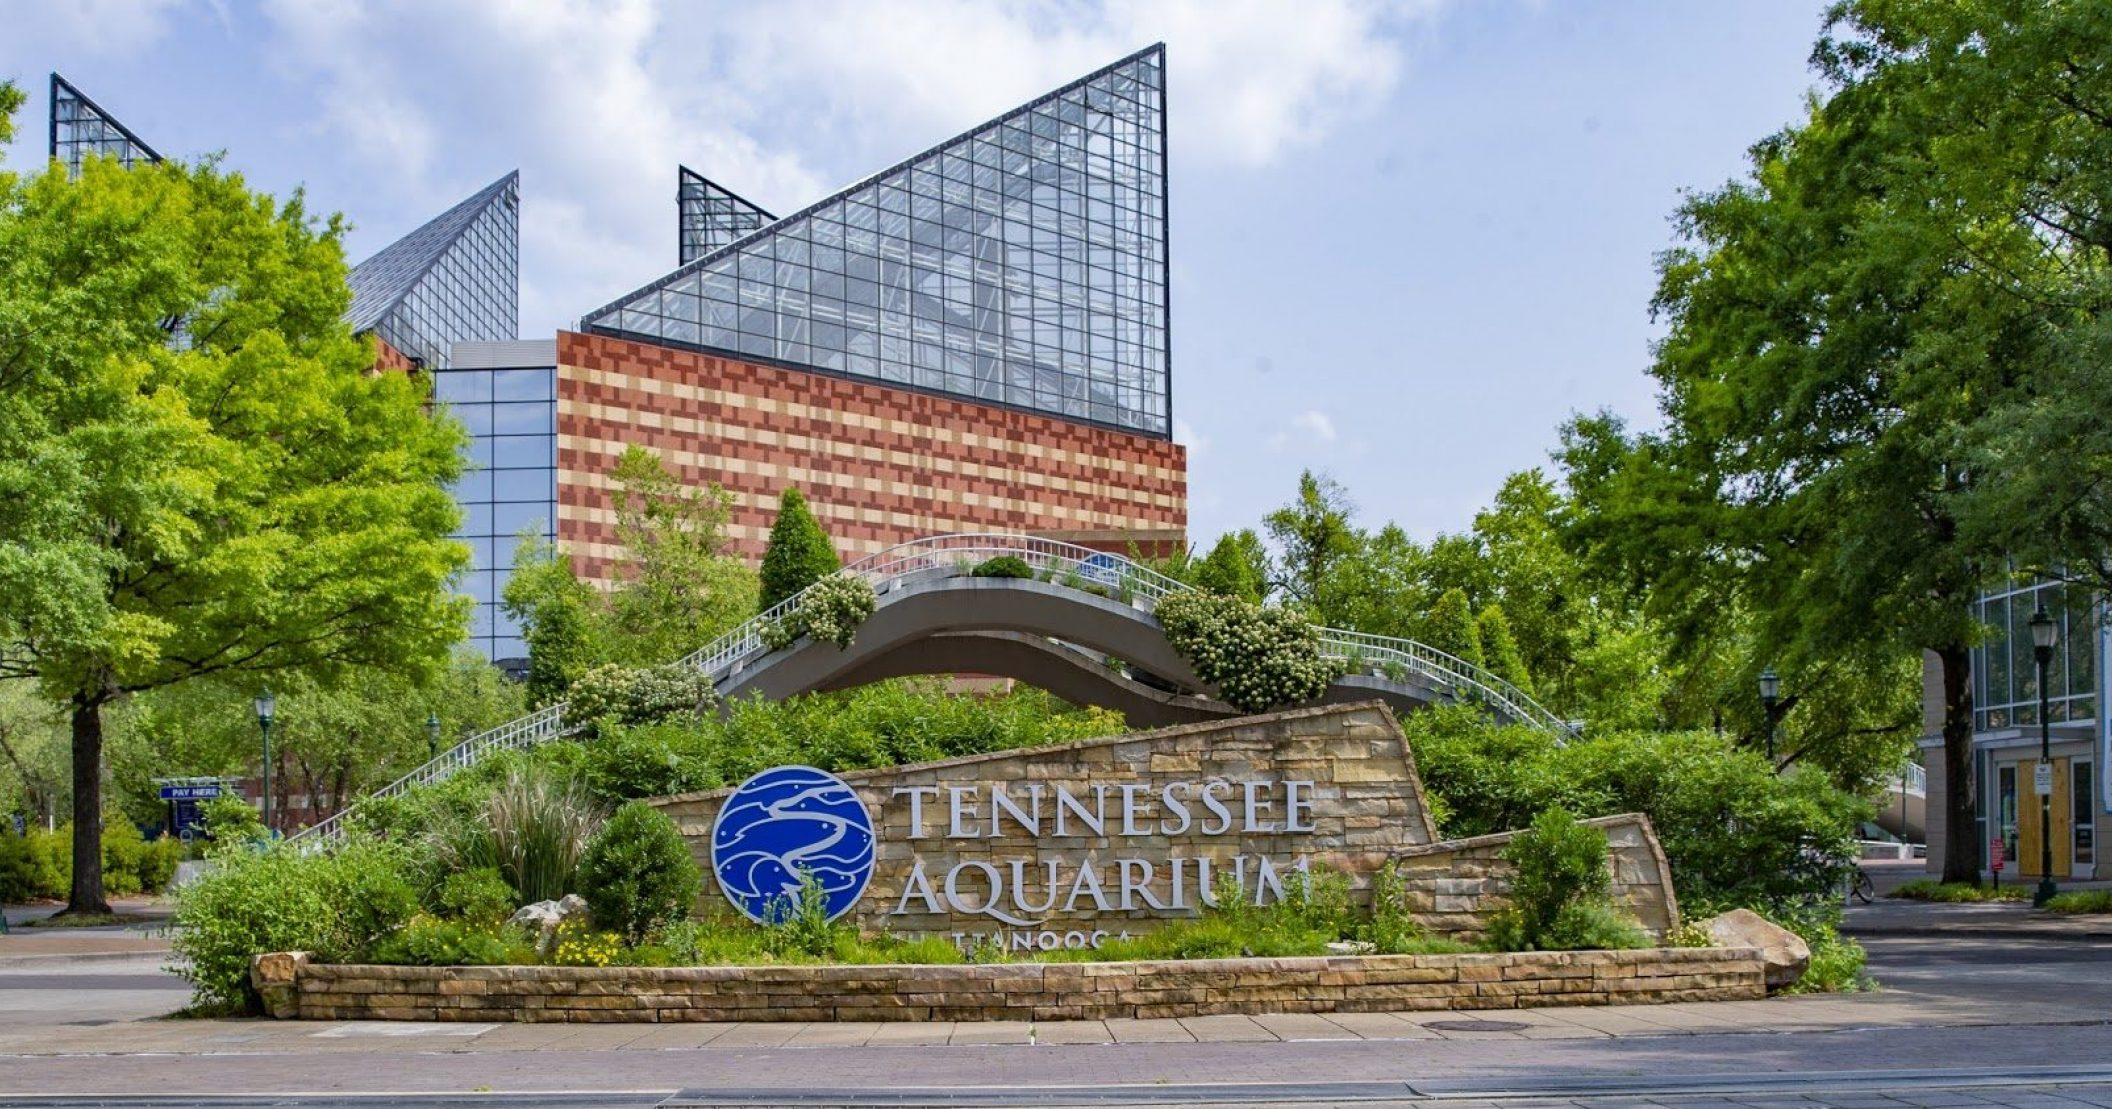 Tennessee Aquarium Implements Reduction in Force as ...